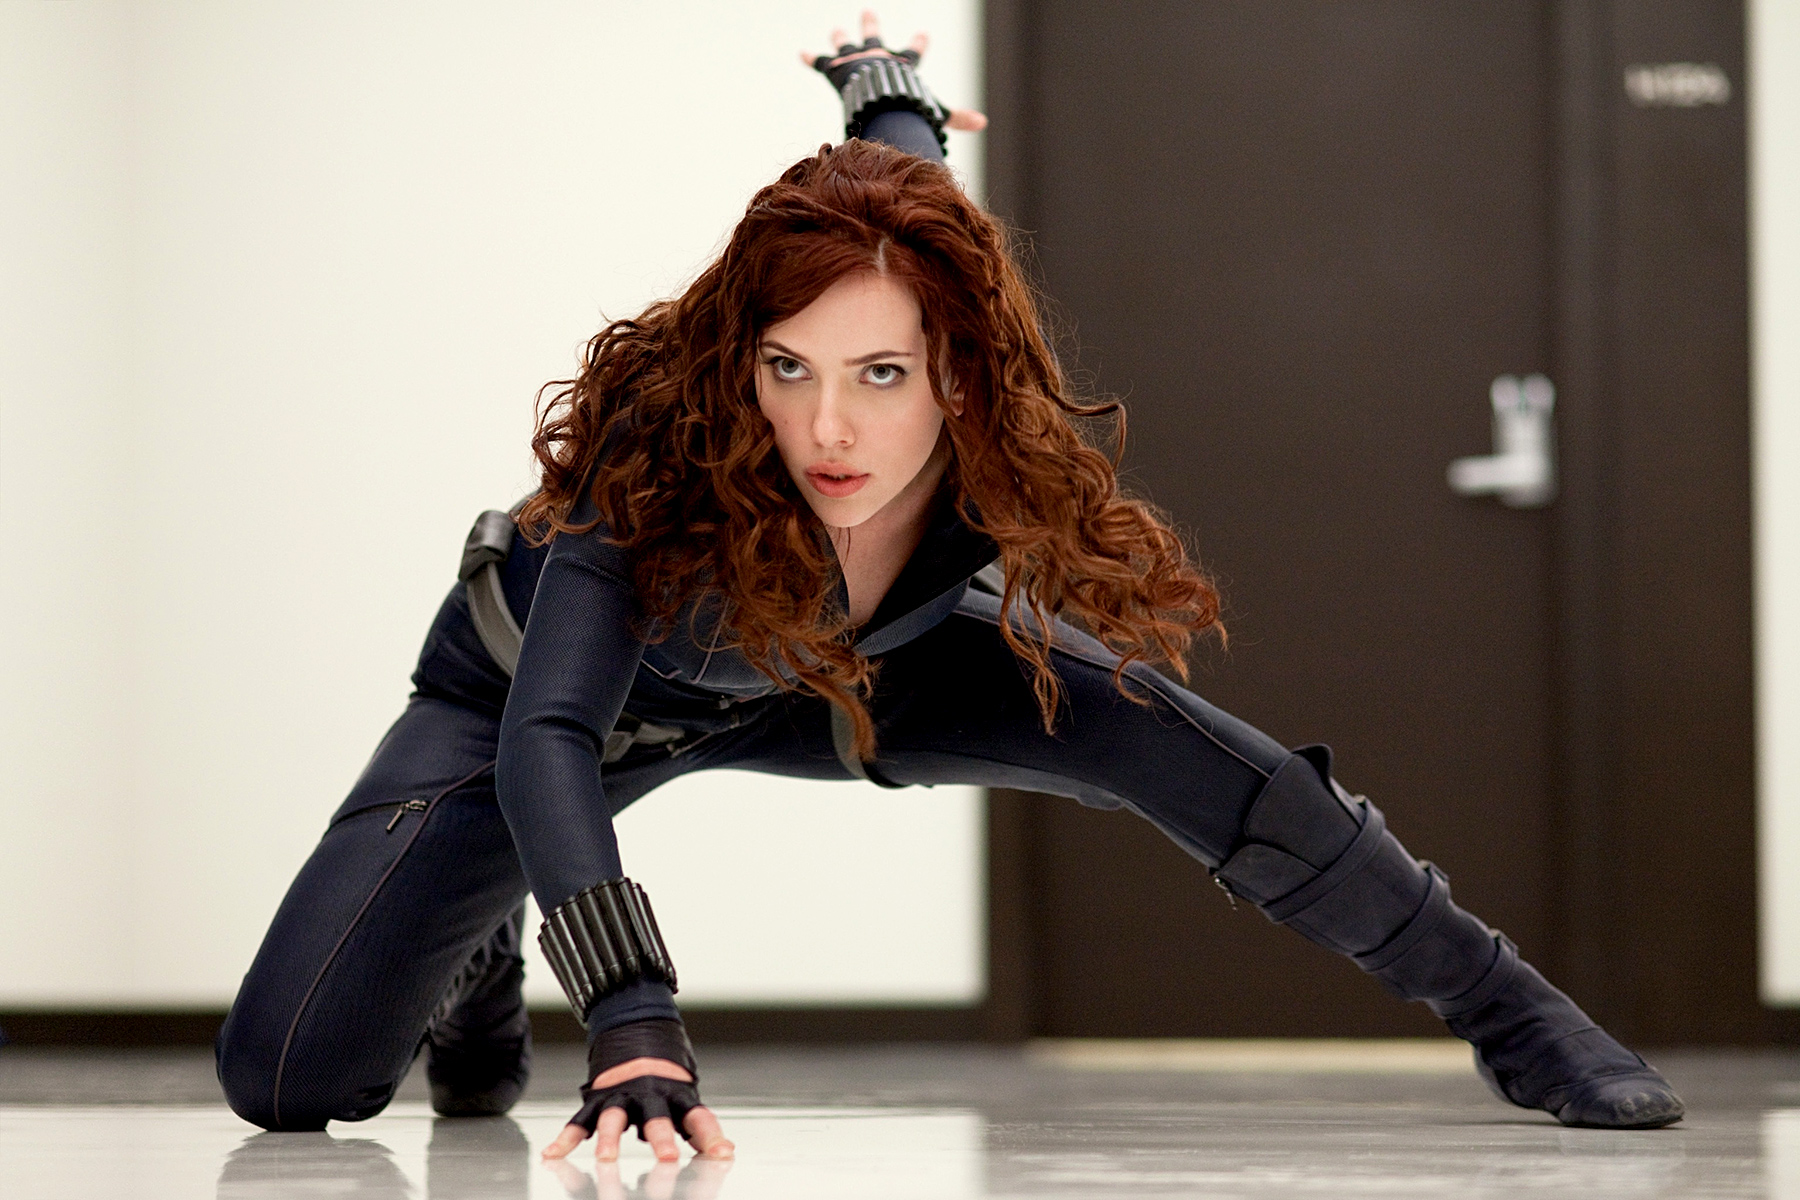 In Iron Man 2 , Scarlett Johansson poured herself into a sleek catsuit to play Black Widow. In 2012 she joined the rest of the crew in The Avengers, and did the same for 2014's Captain America: The Winter Soldier.